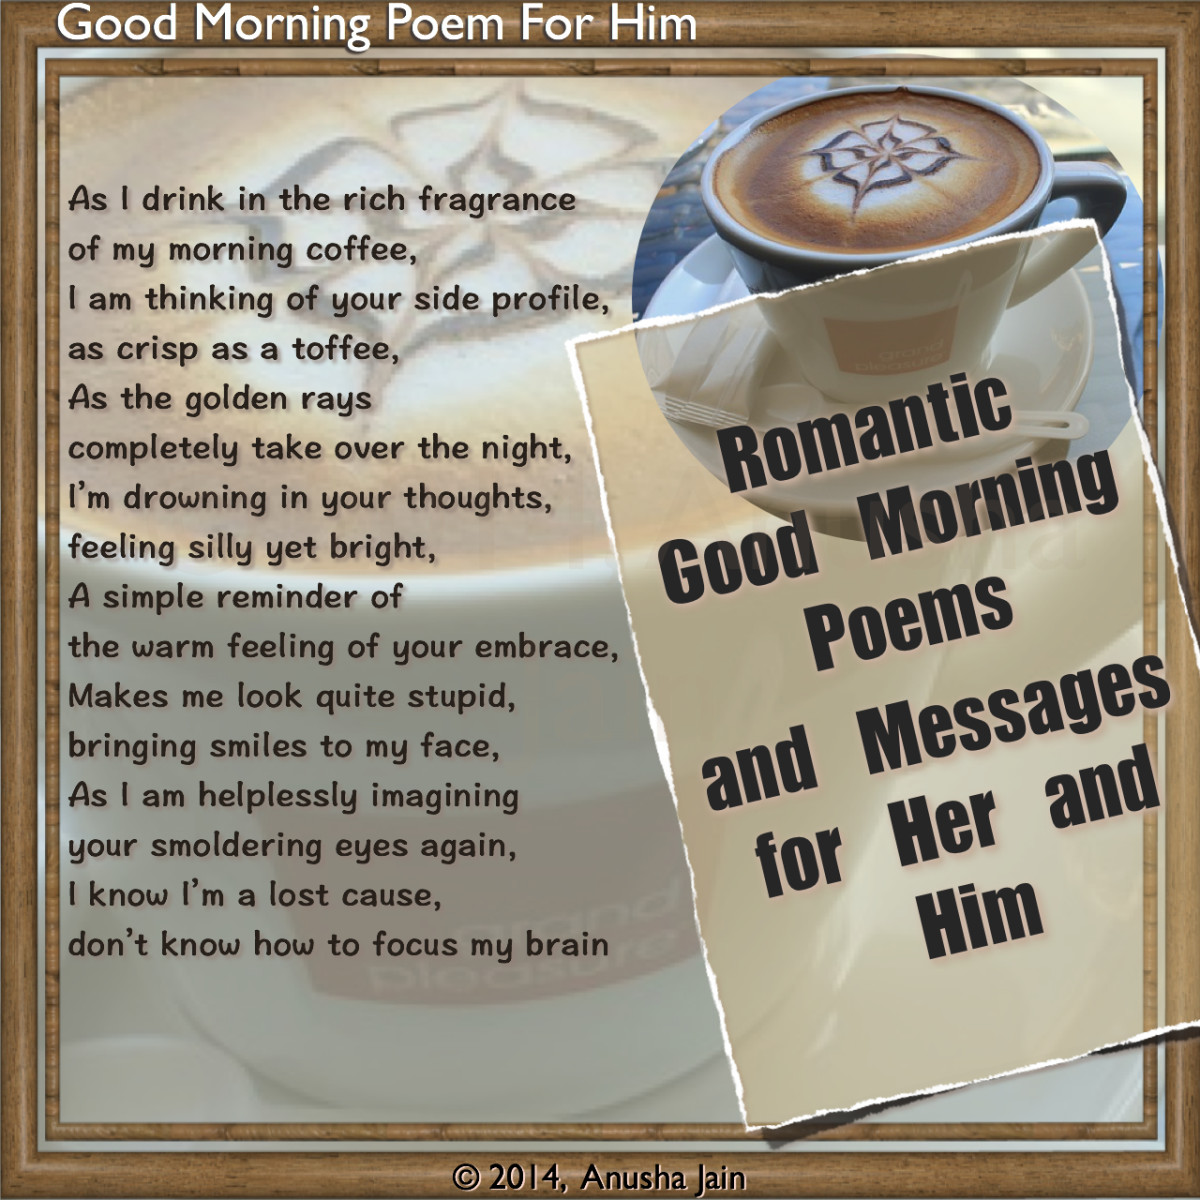 Check out these romantic good morning messages!